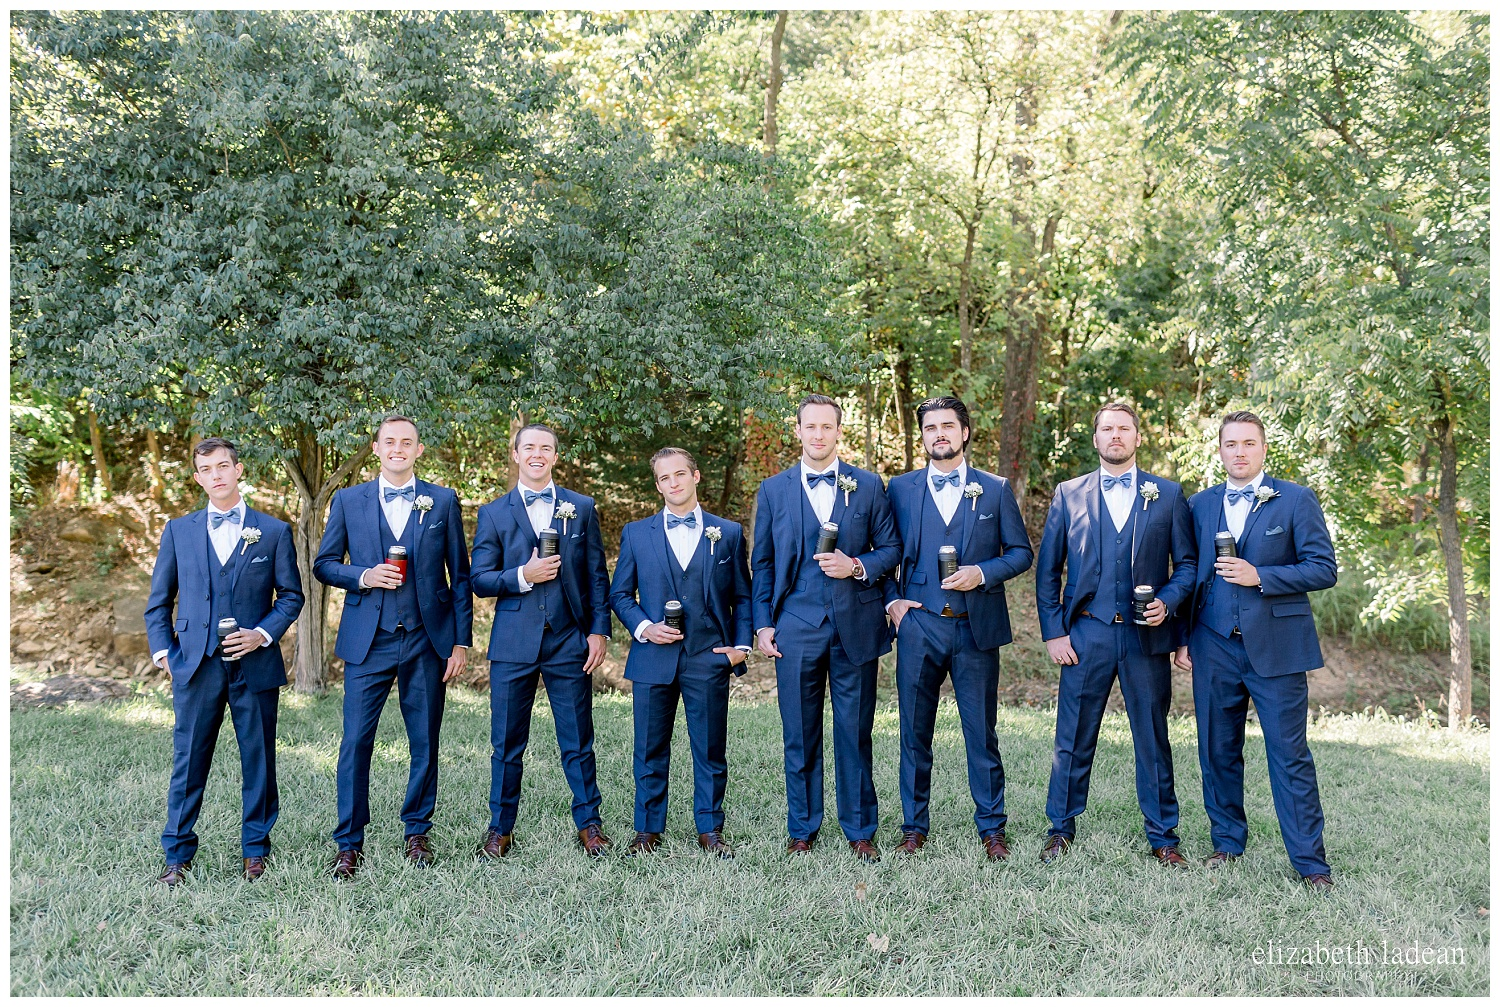 Willow-Creek-Blush-and-Blues-Outdoor-Wedding-Photography-S+Z2018-elizabeth-ladean-photography-photo_0554.jpg